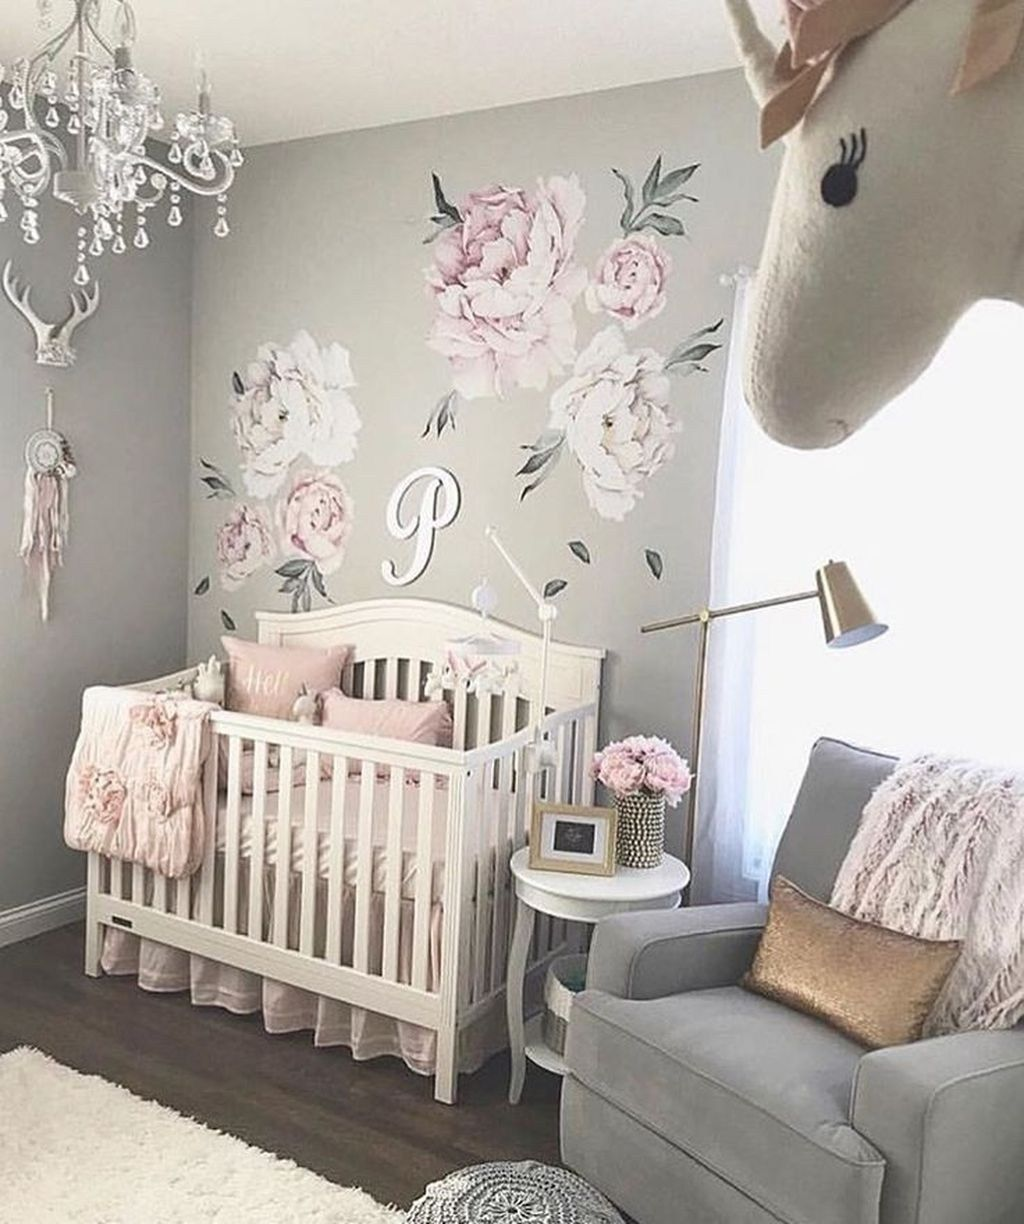 Baby Nursery Decor, Baby, Baby Room Decor